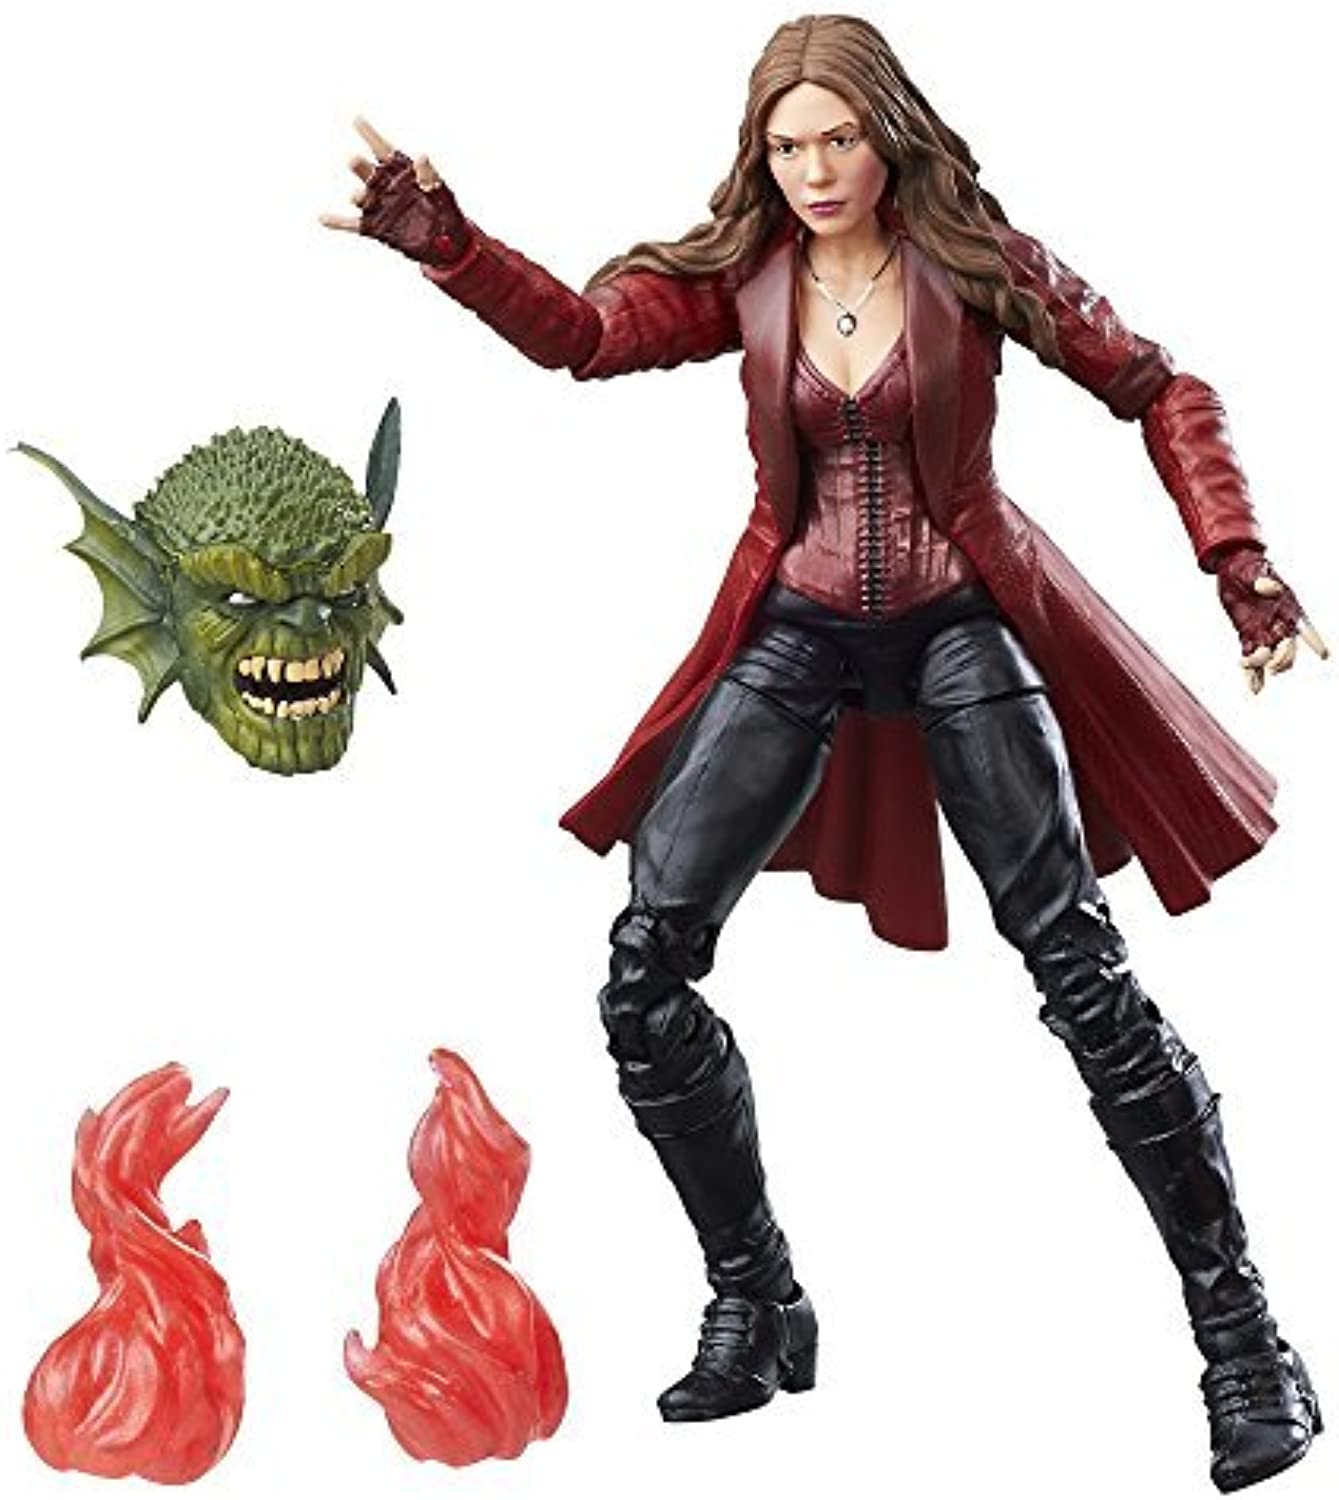 Captain America scarlet witch Action Figure built abomination by Captain america